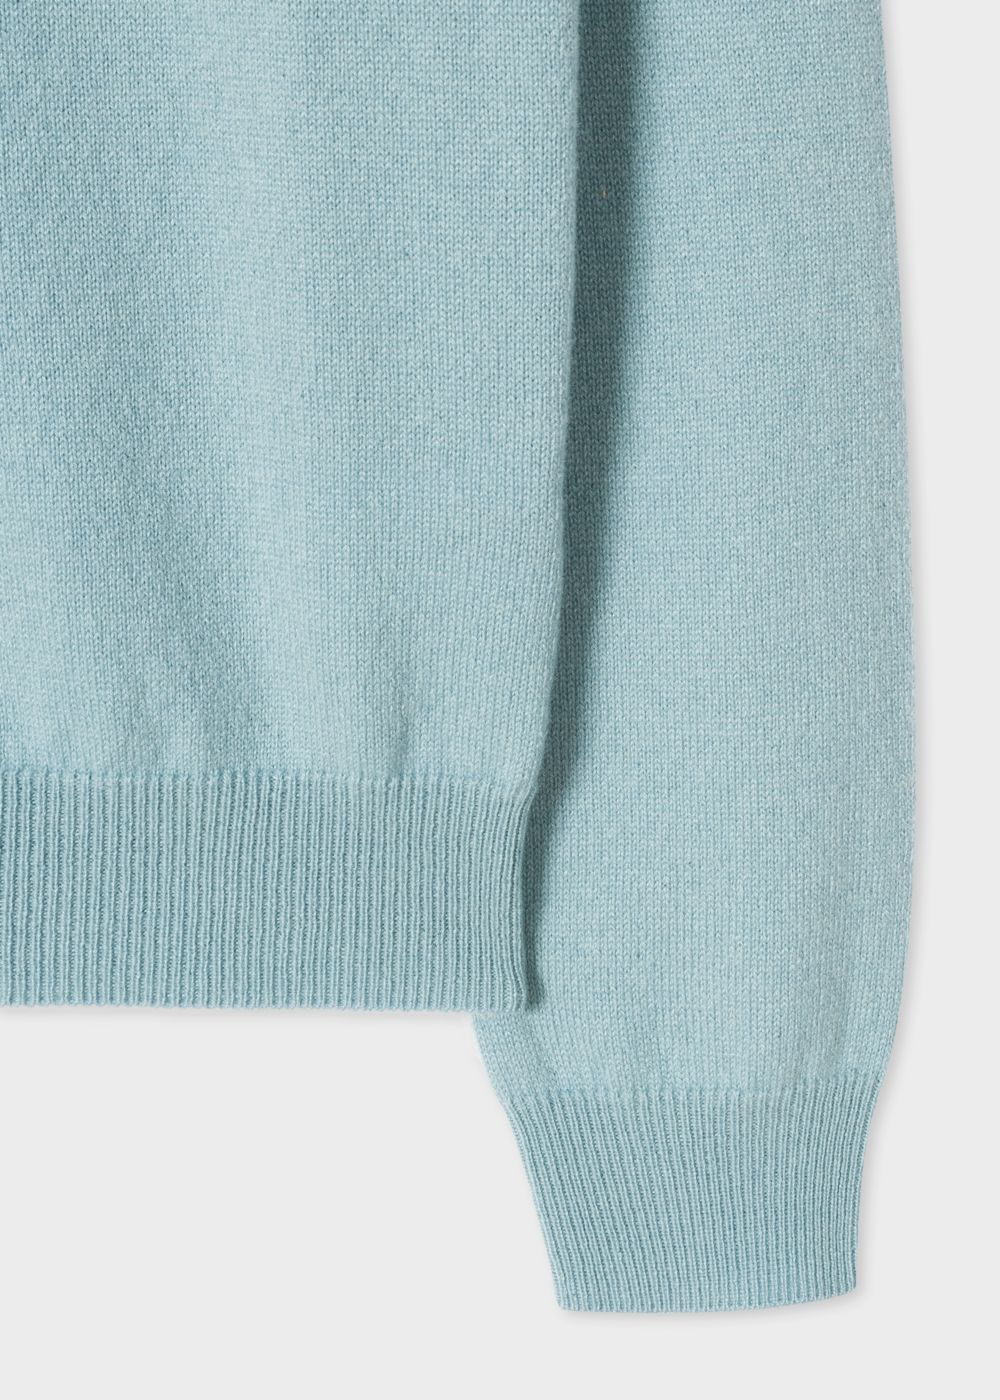 Womens Light Blue Cashmere Sweater With Textured Collar Pinterest